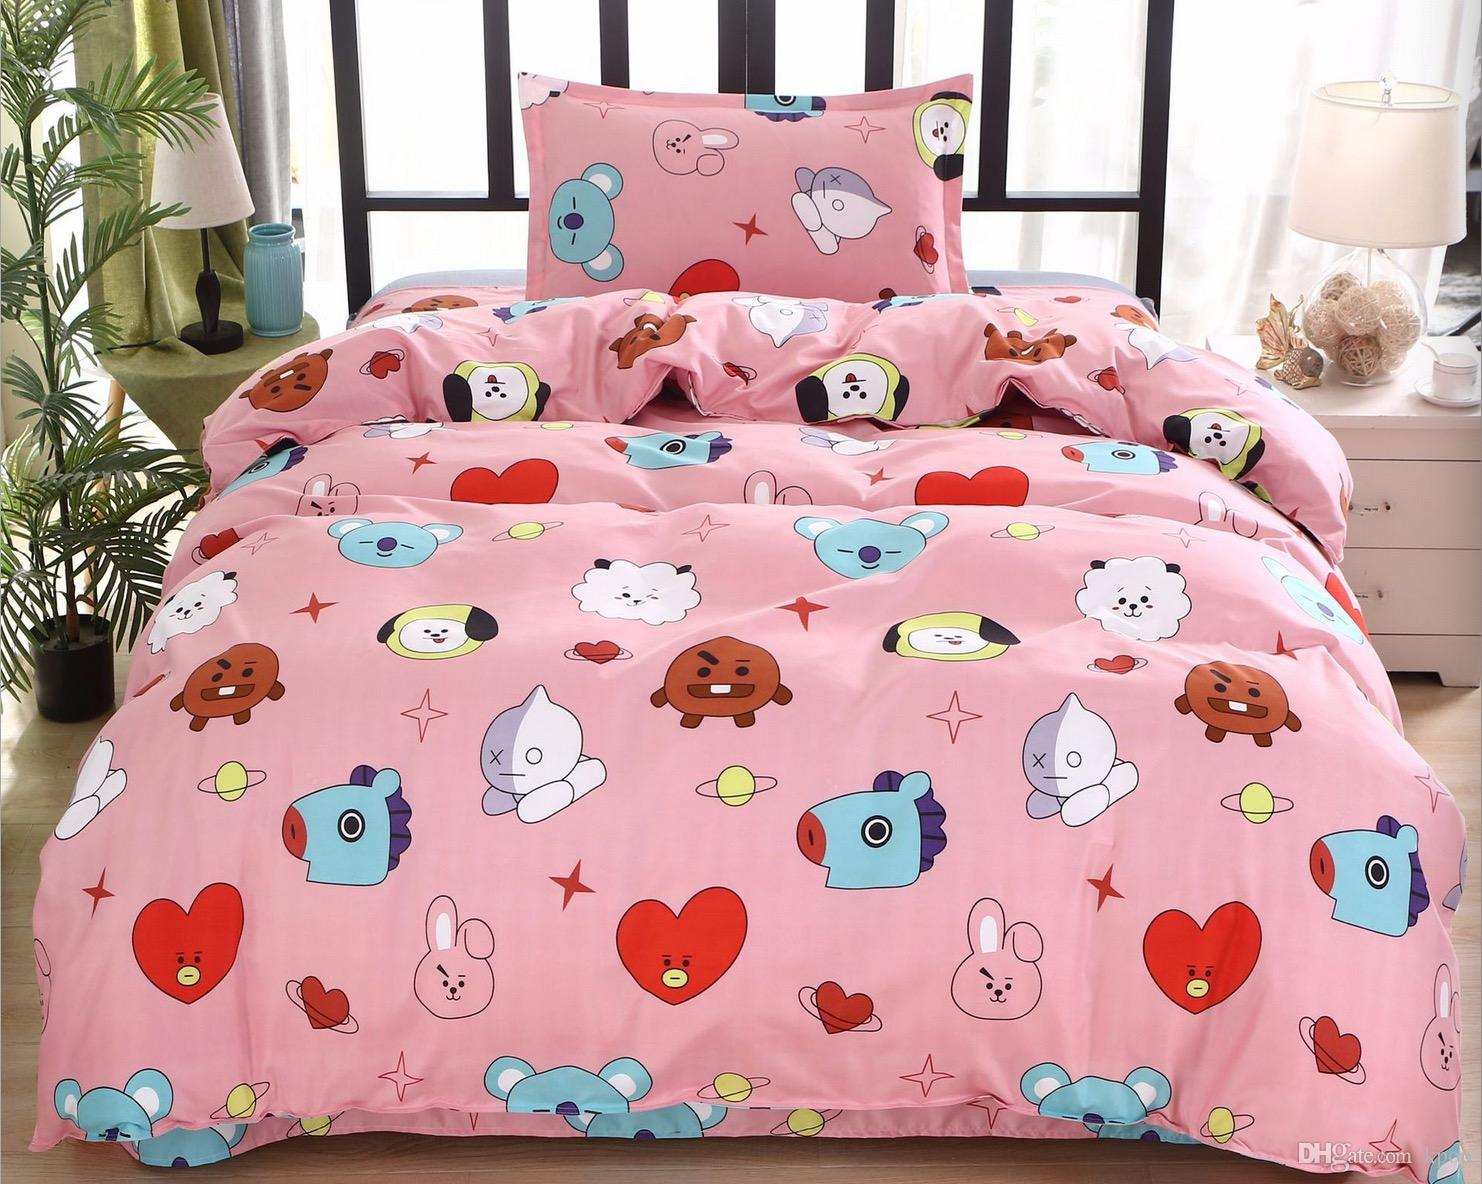 Bts Bt21 Bedding Sets Quilt Cover 150 200cm Flat Sheet